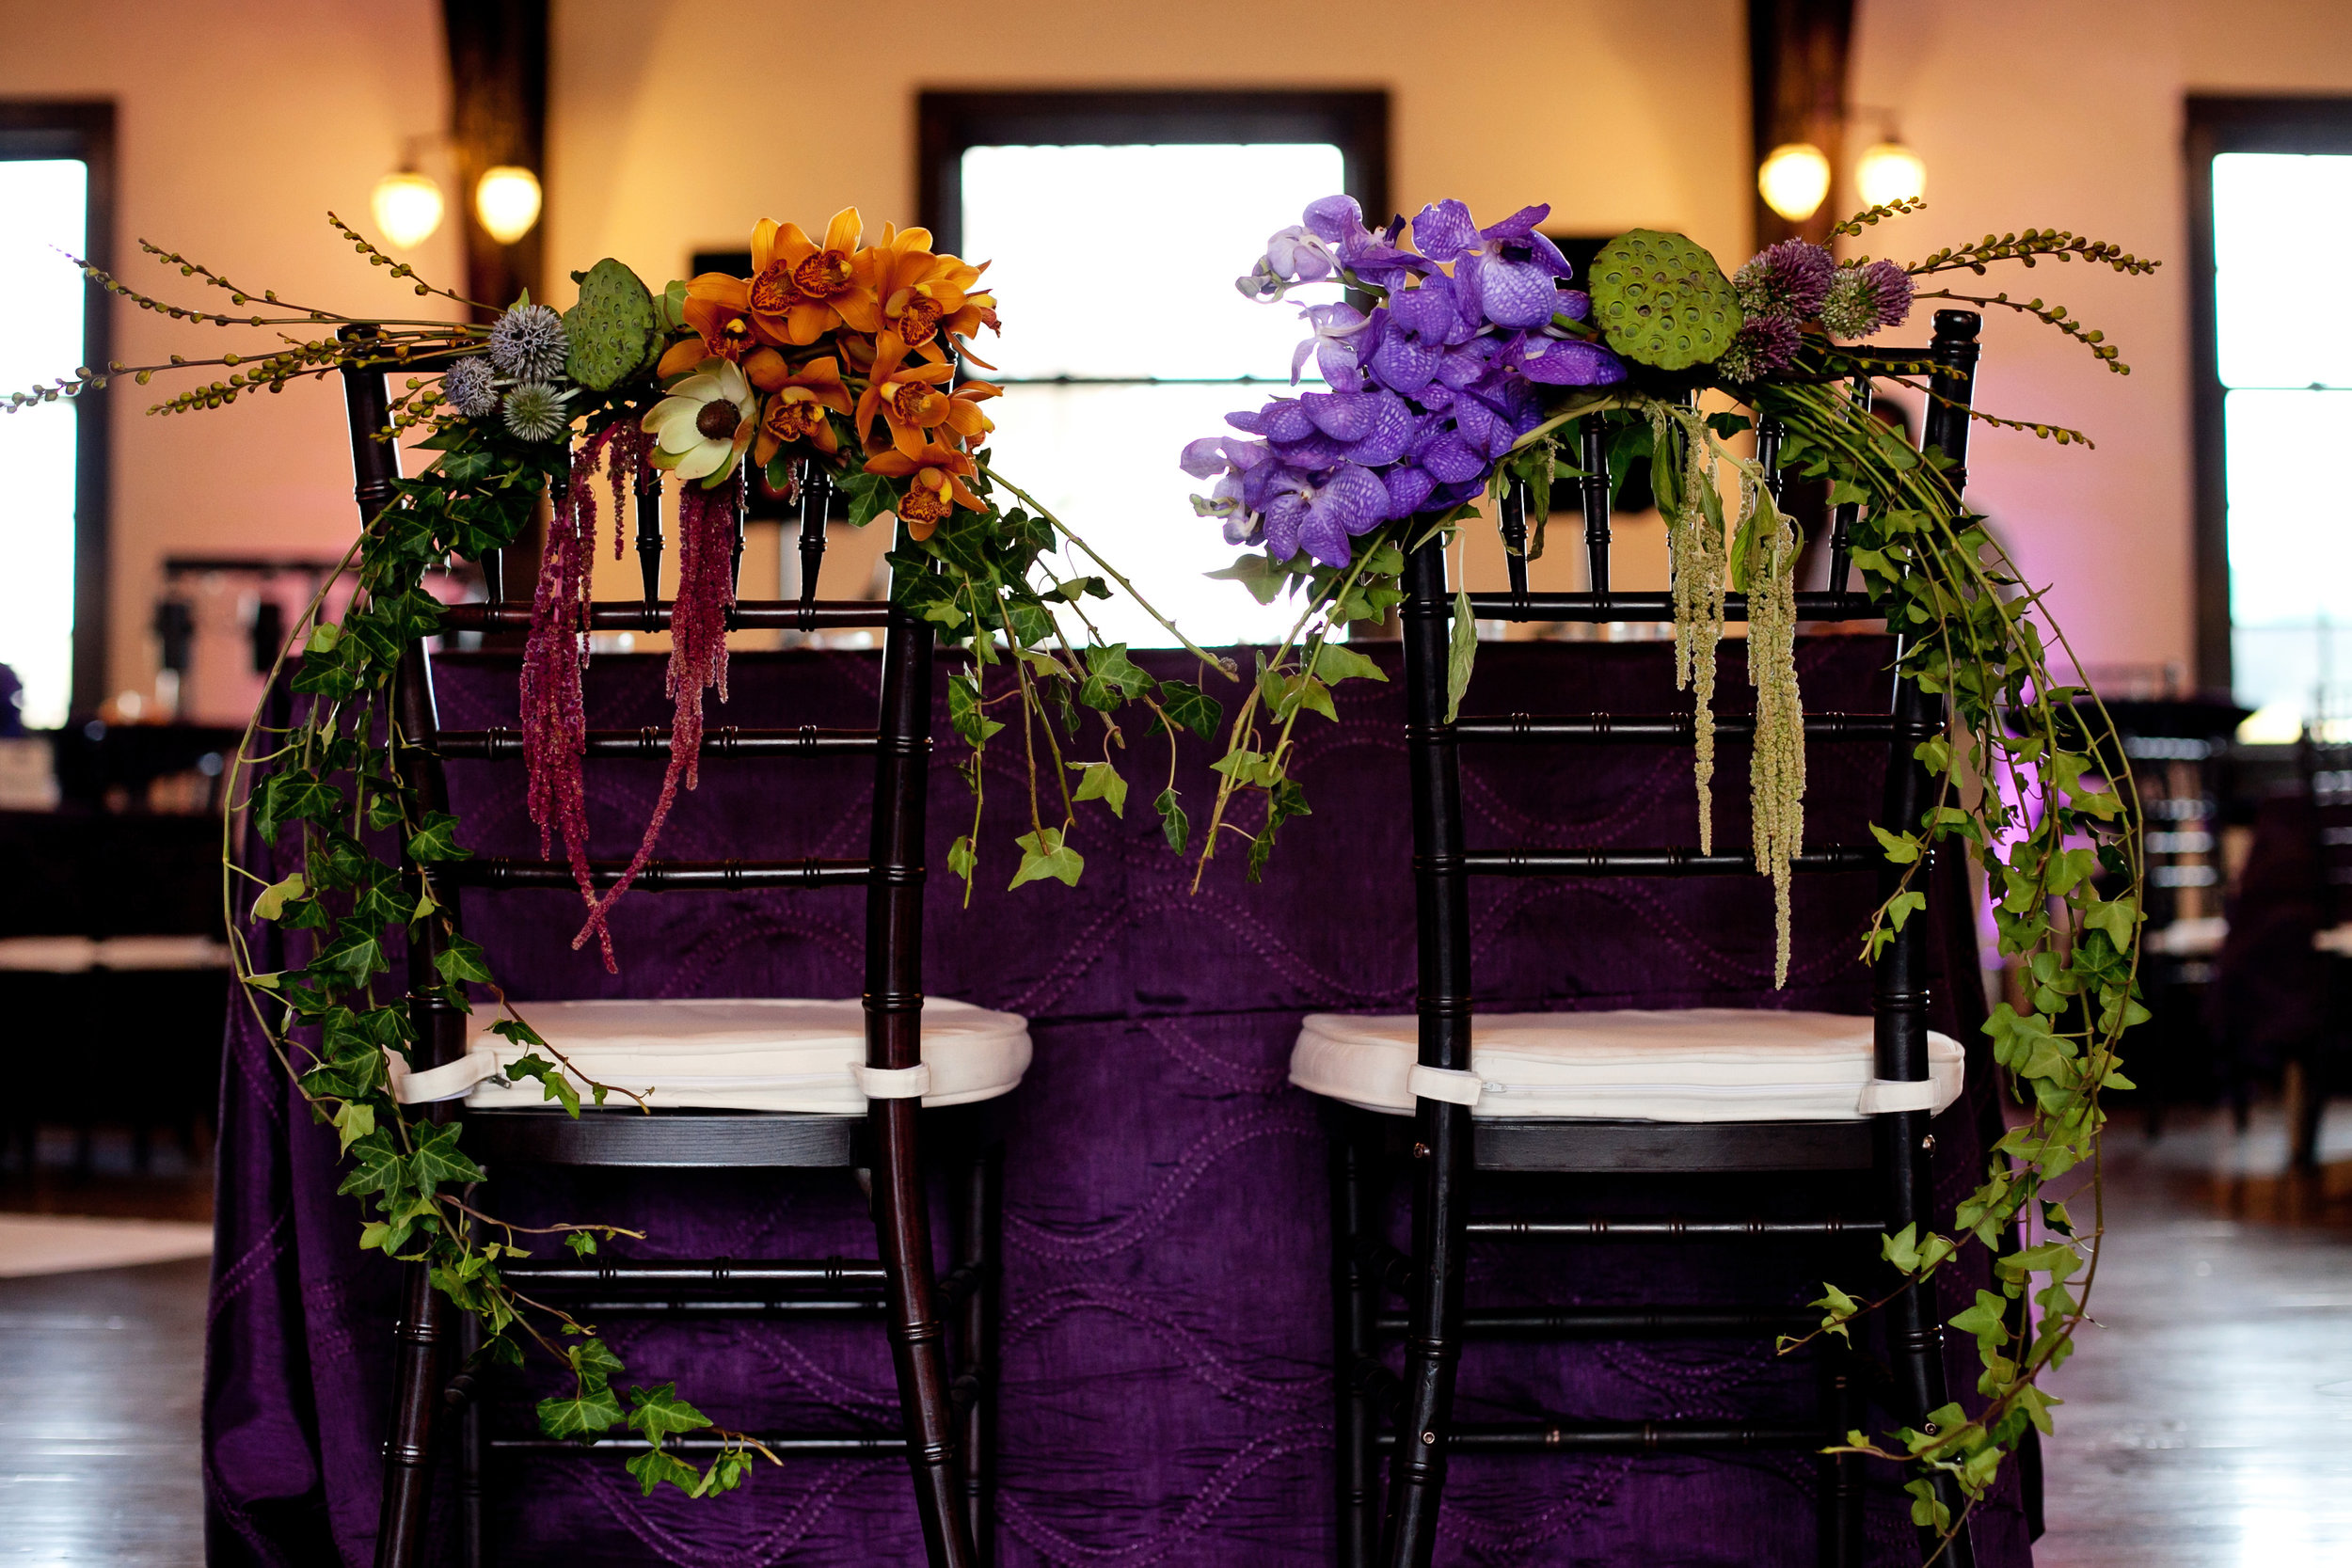 48 sweetheart table two brides sweetheart table sweetheart table decor purple and orange flowers at sweetheart table Life Design Events .jpg